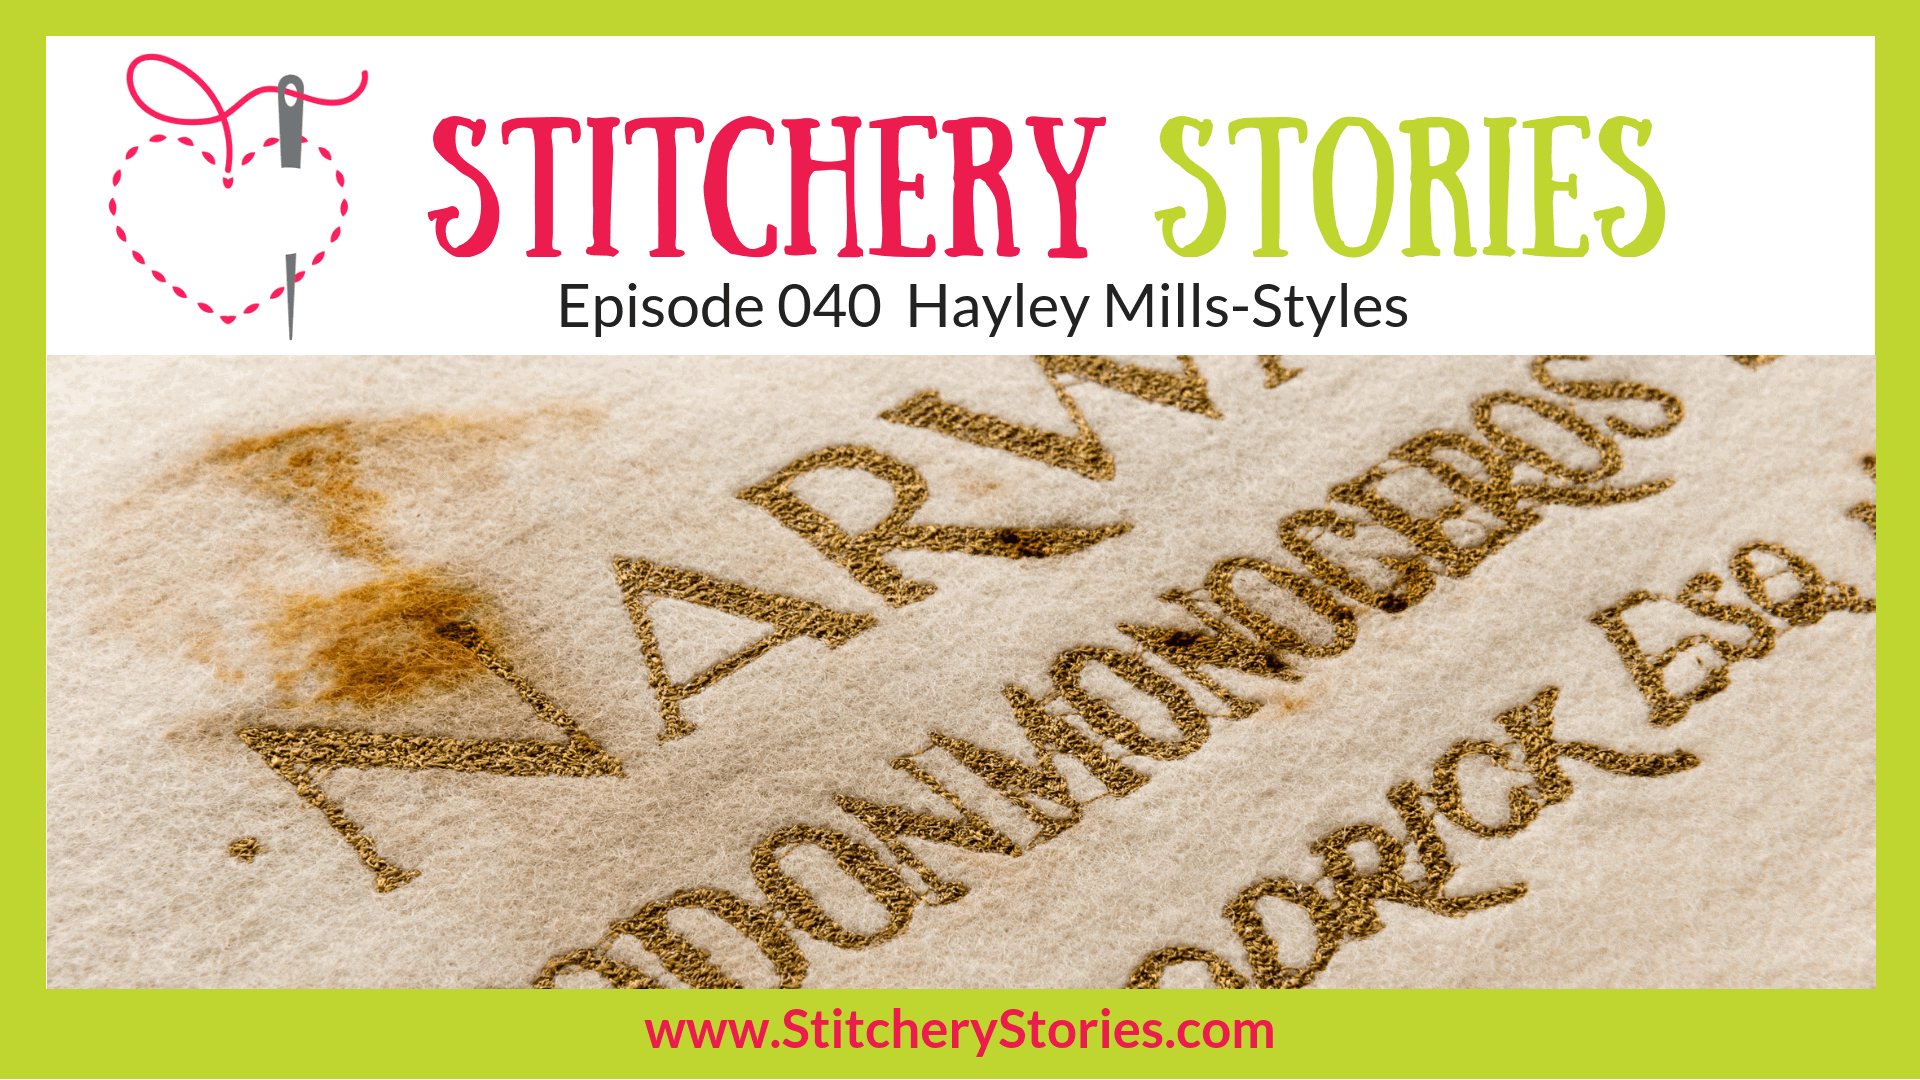 Hayley Mills-Styles Thread Artist Stitchery Stories Textile Art Podcast Wide Art